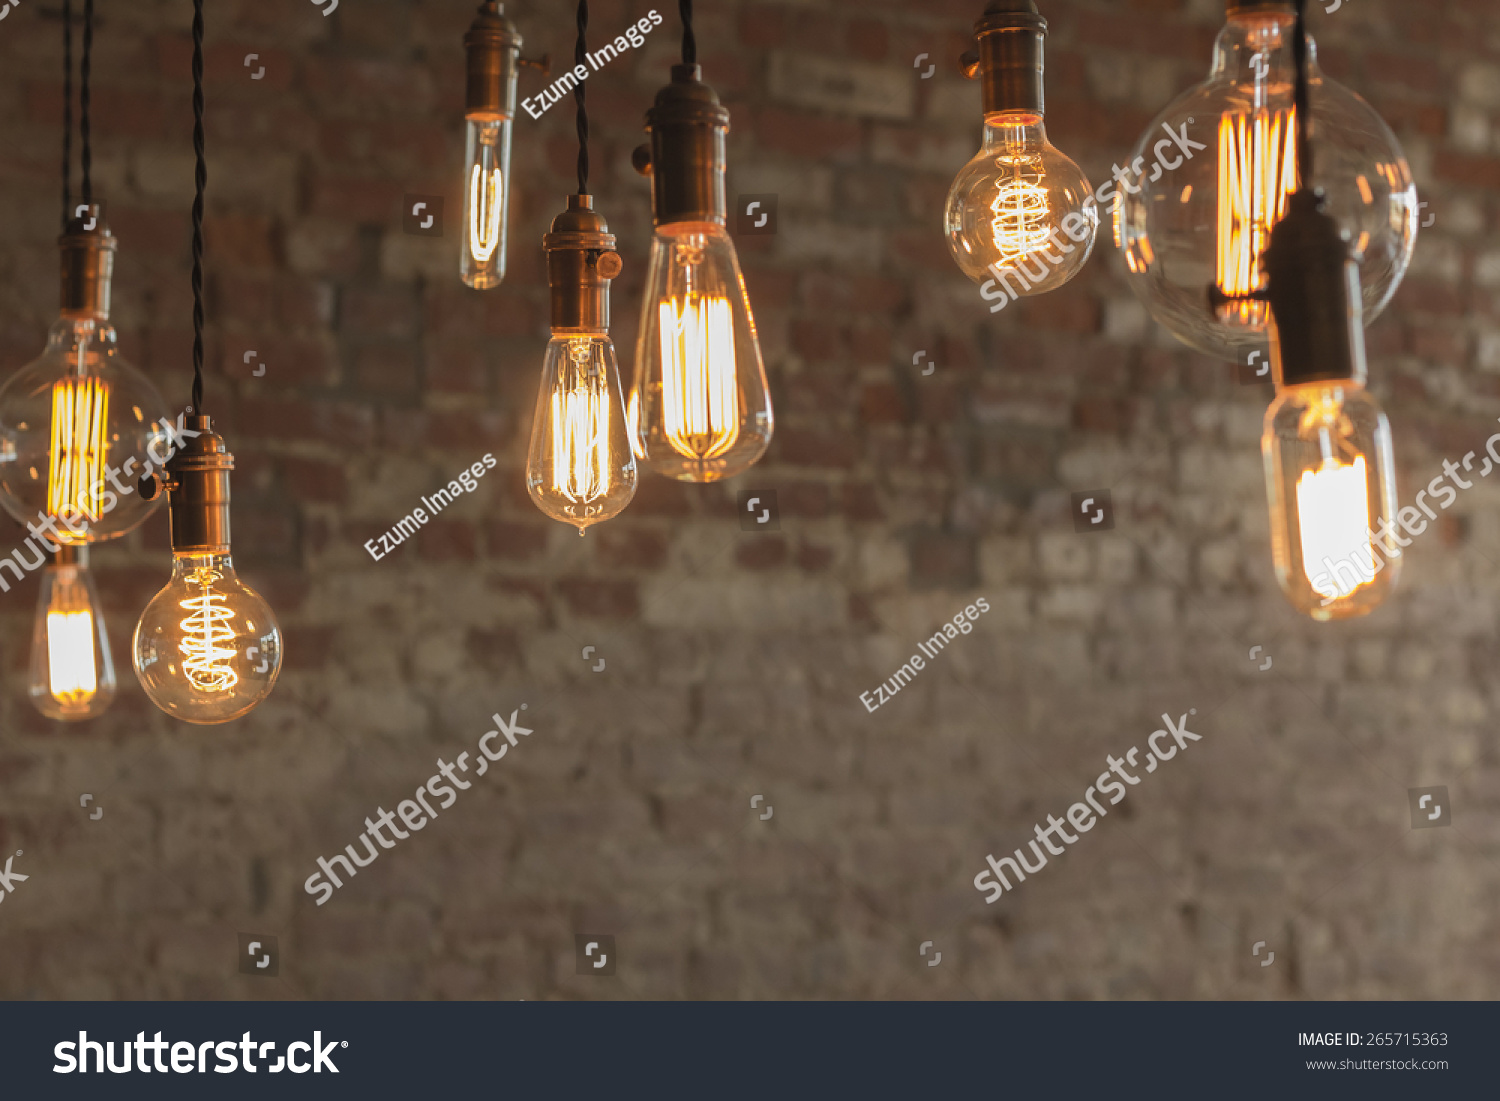 Decorative antique edison style light bulbs stock photo 265715363 decorative antique edison style light bulbs against brick wall background arubaitofo Gallery